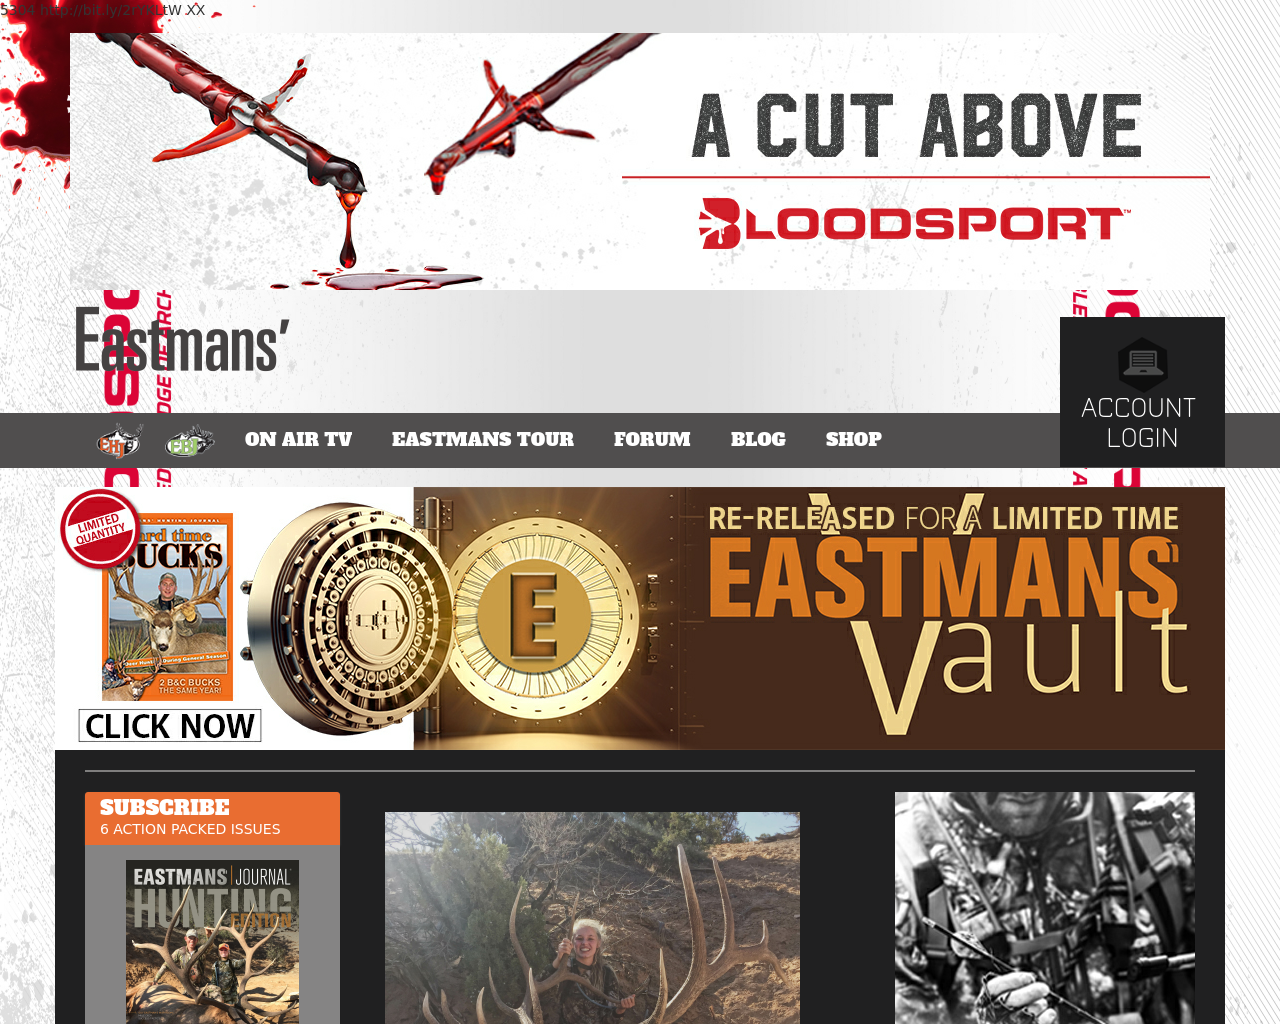 Eastmans-Advertising-Reviews-Pricing